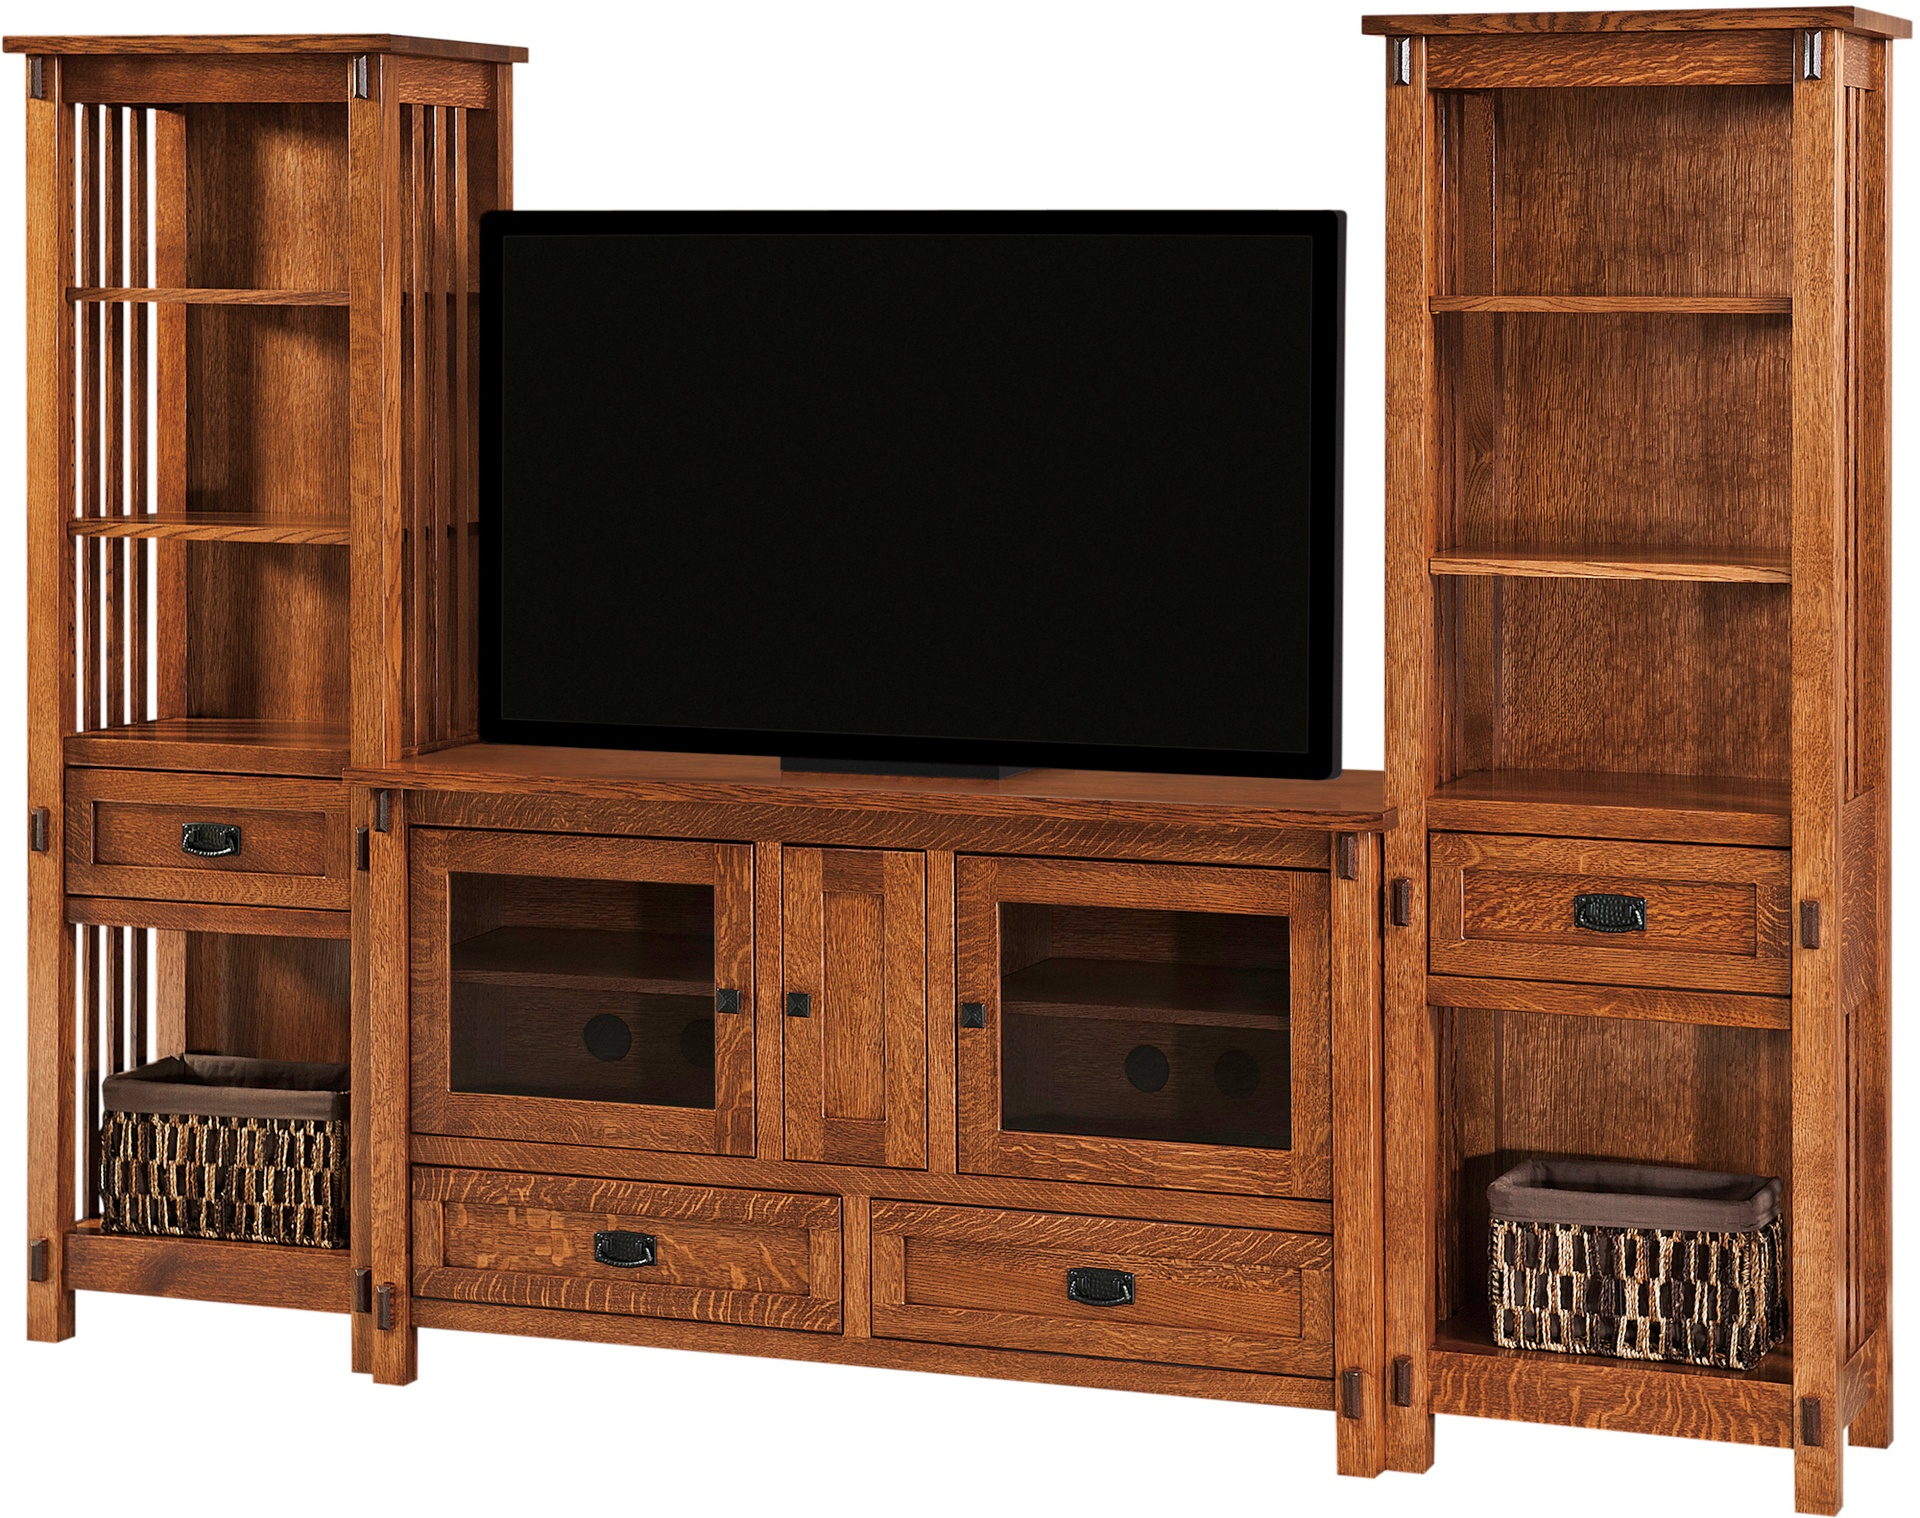 Entertainment Centers | Amish Furniture by Brandenberry Amish ...